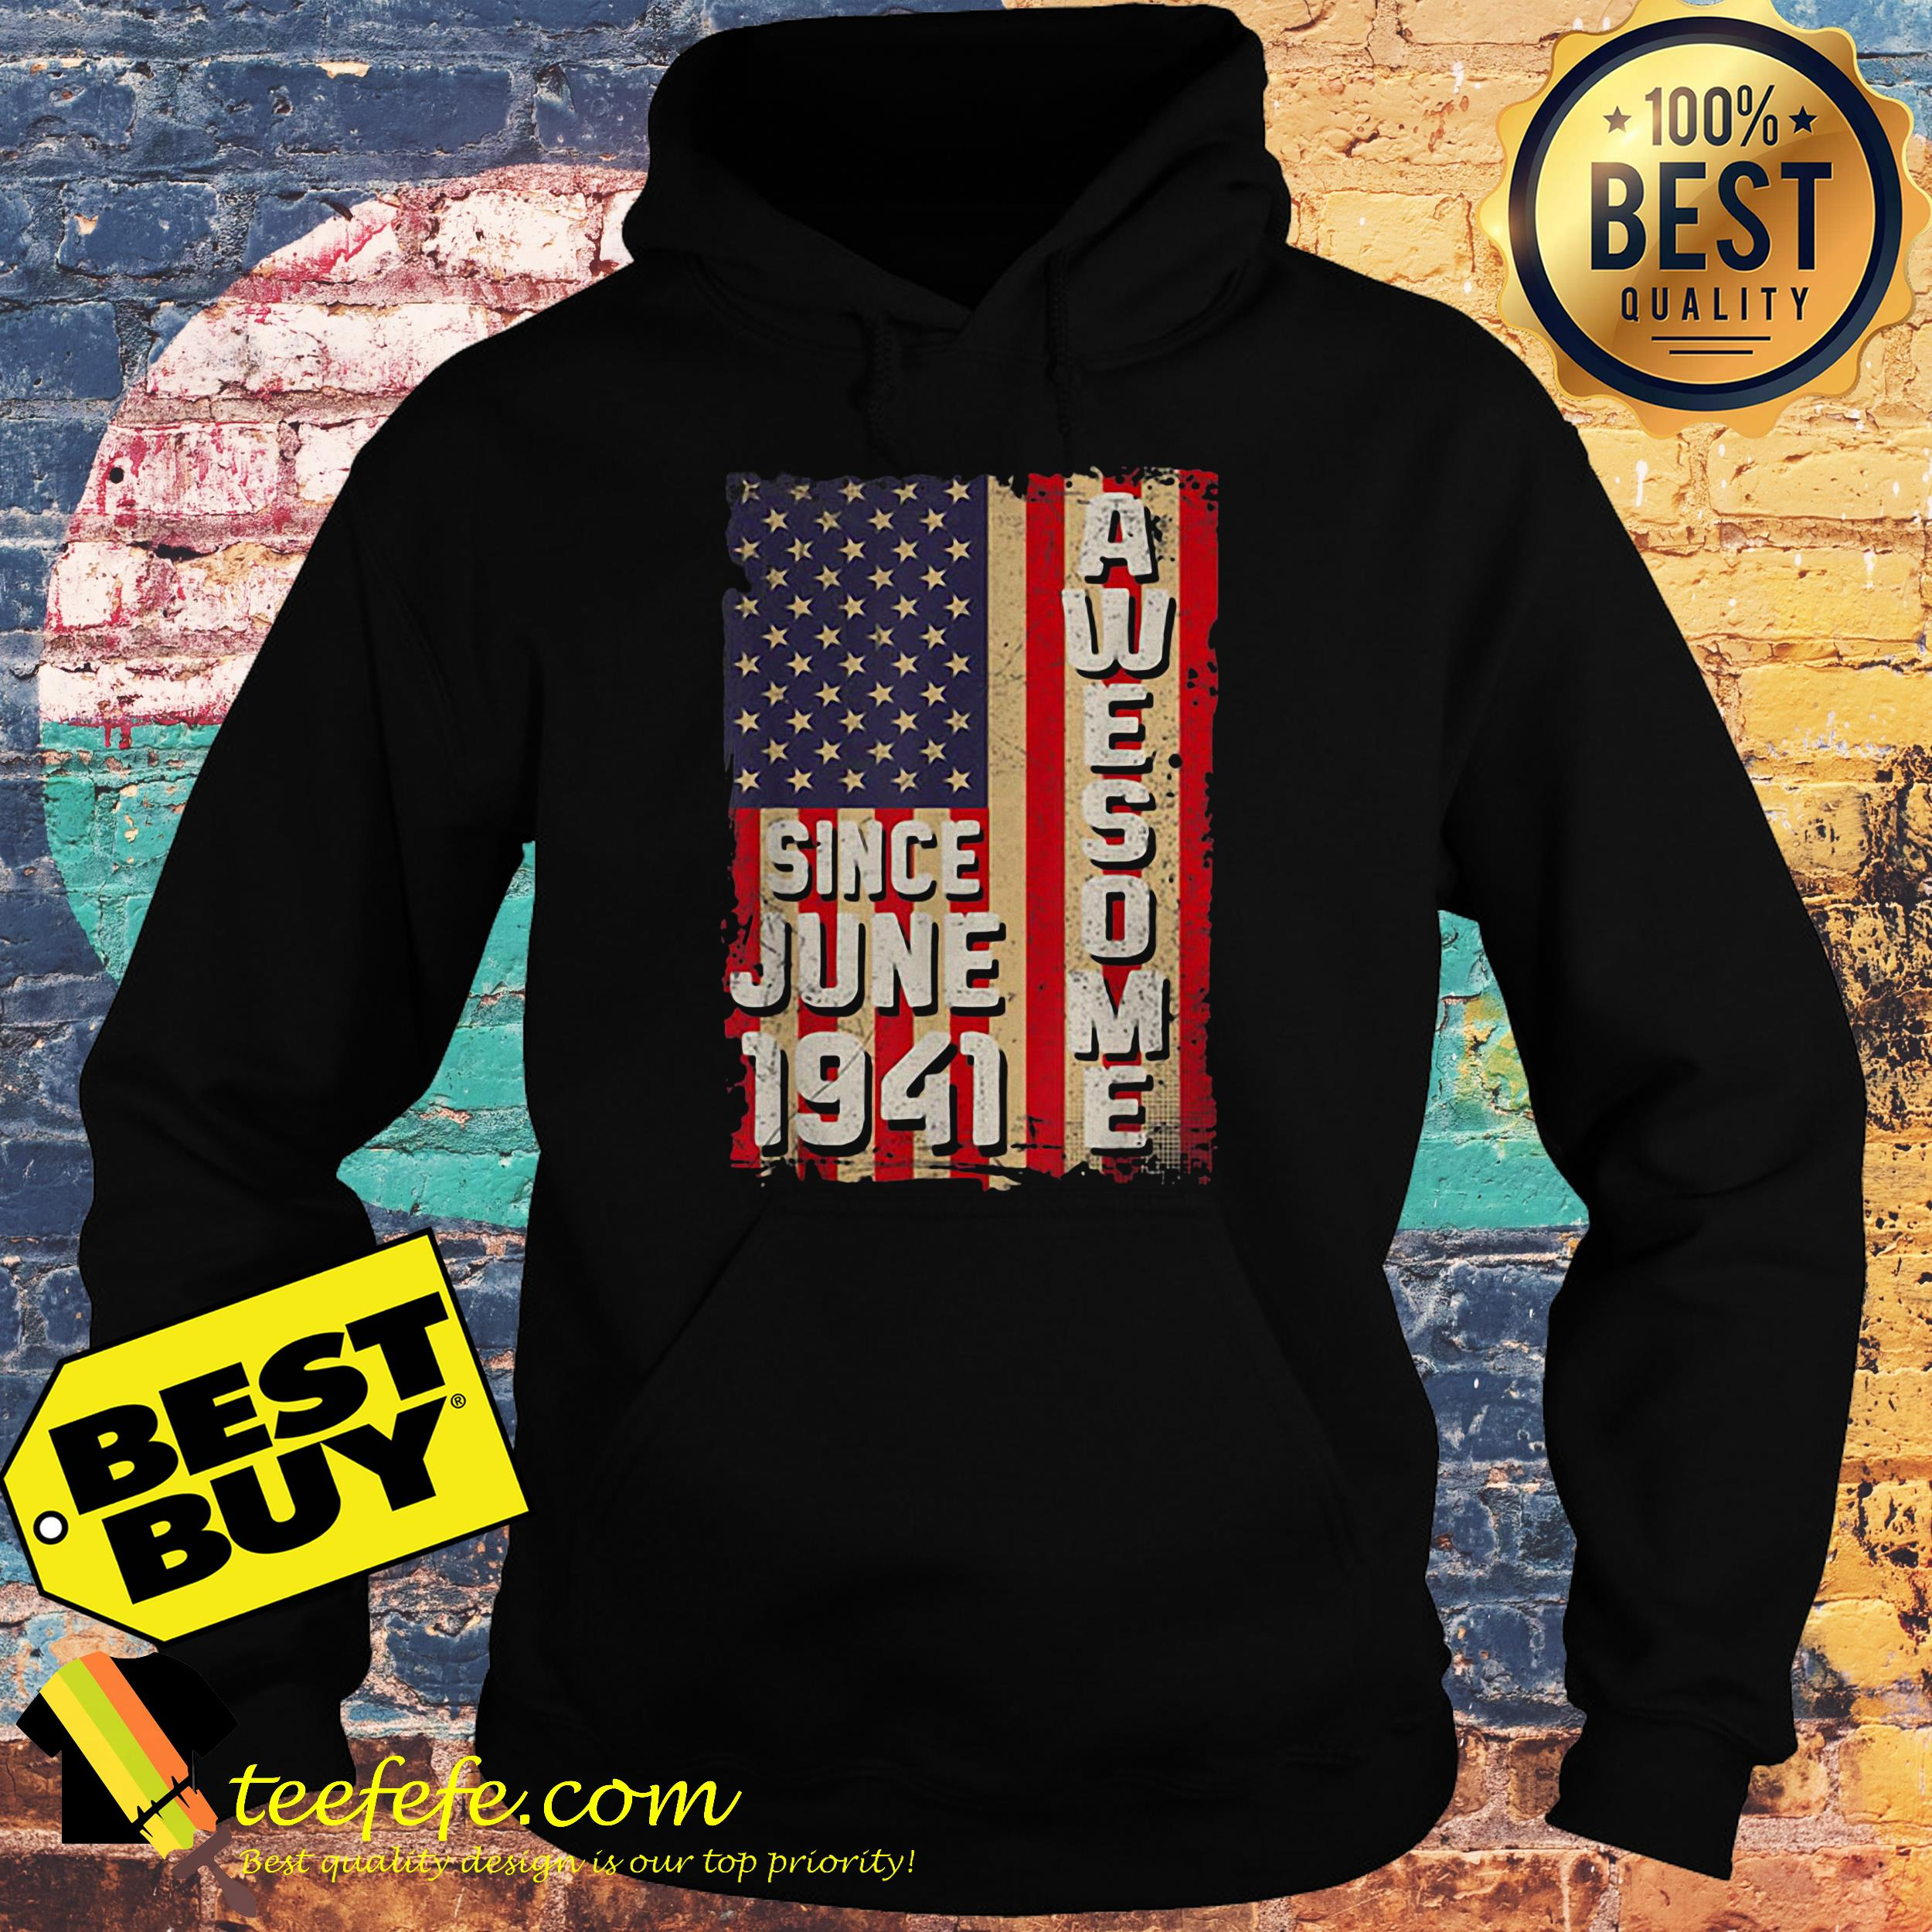 Awesome since June 1941 American flag hoodie